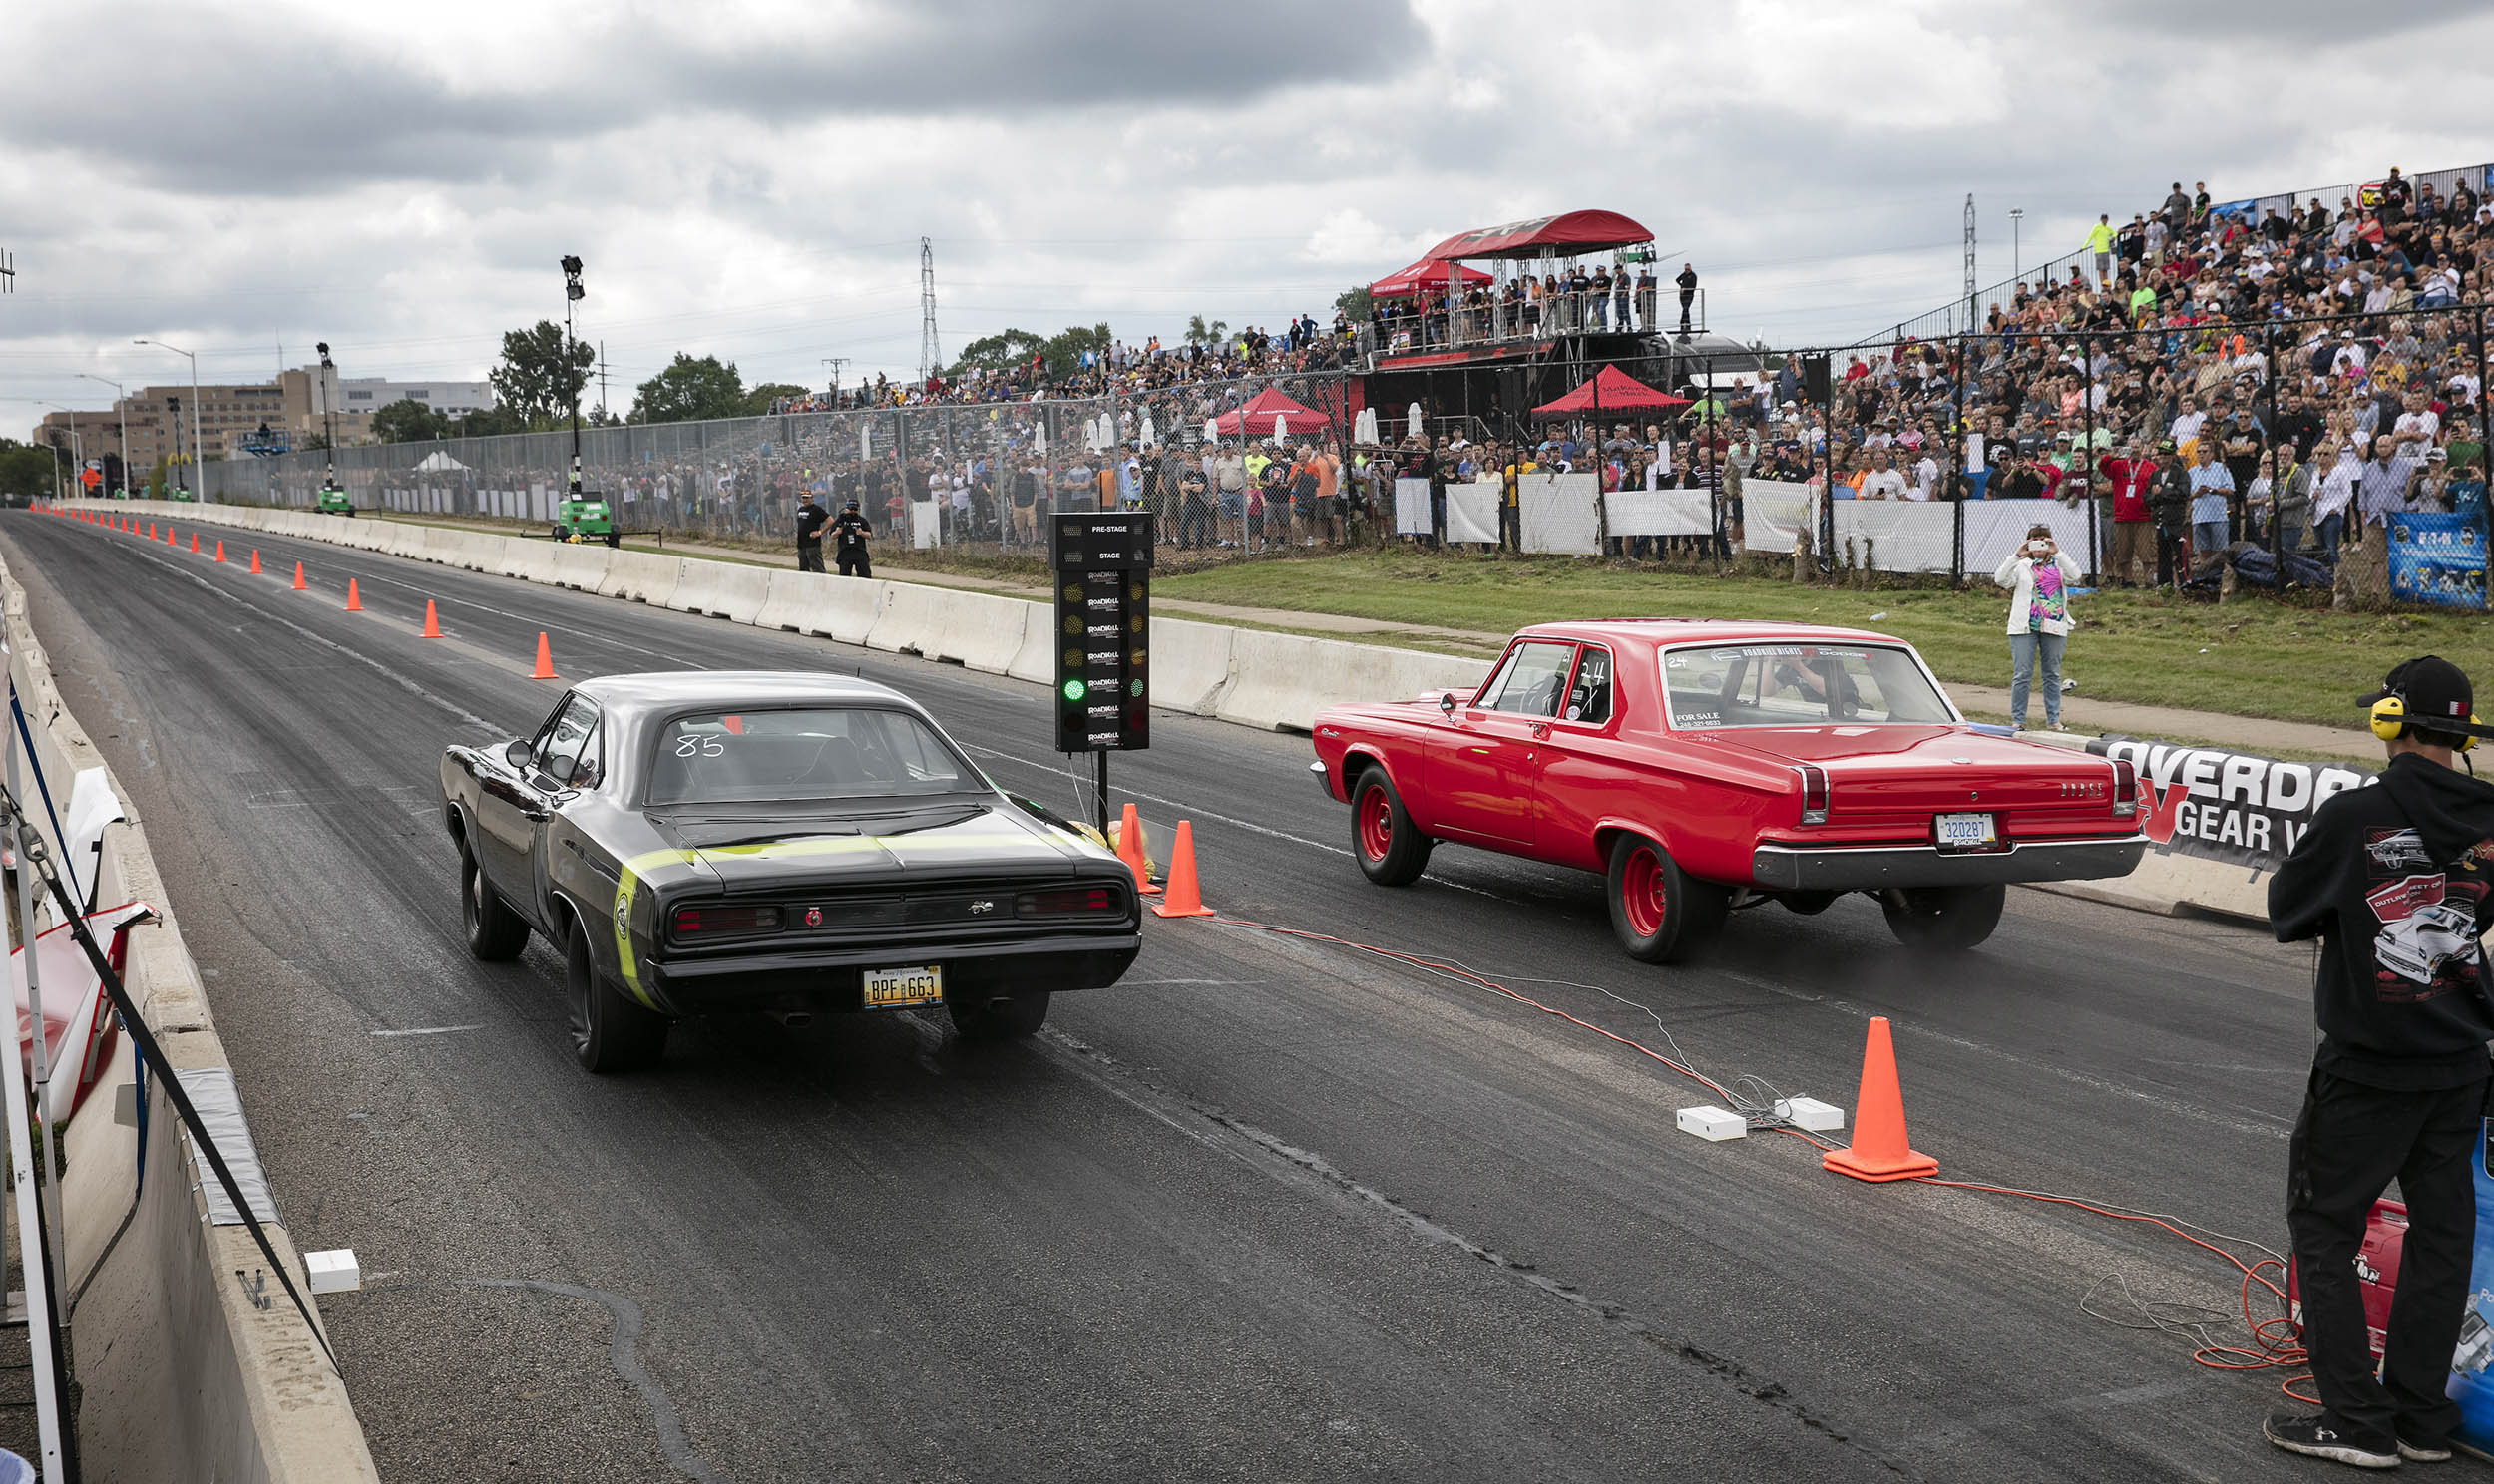 Roadkill Nights Powered by Dodge car lined up at the start line